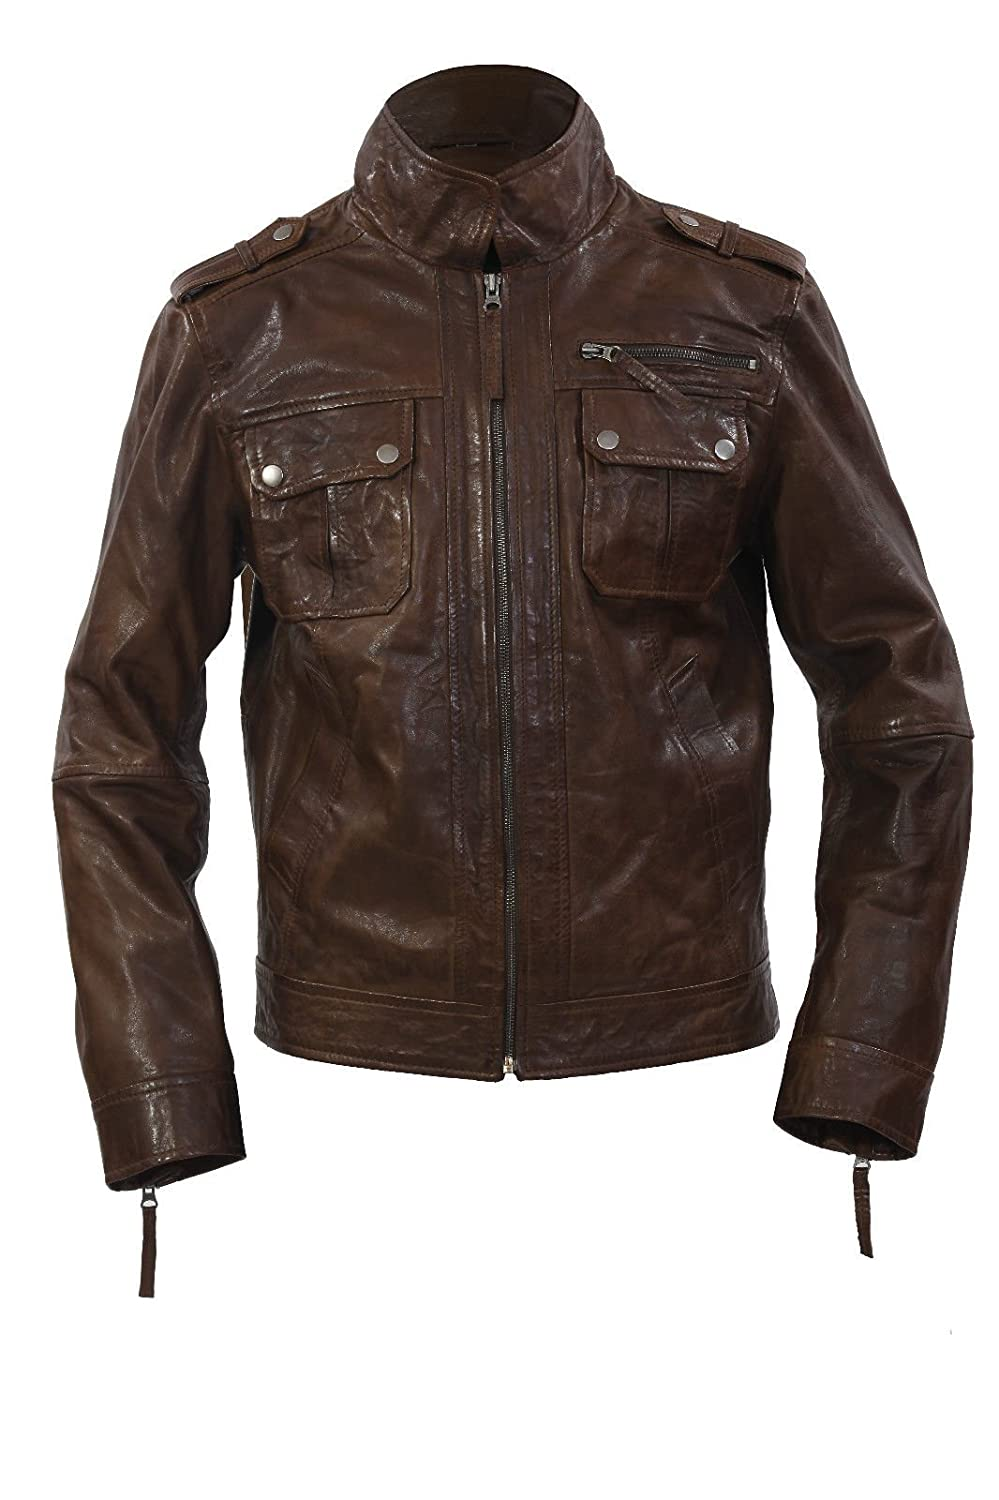 NATHAN MAN BROWN SHORT STYLE CASUAL NAPPA REAL SOFT LEATHER JACKETS